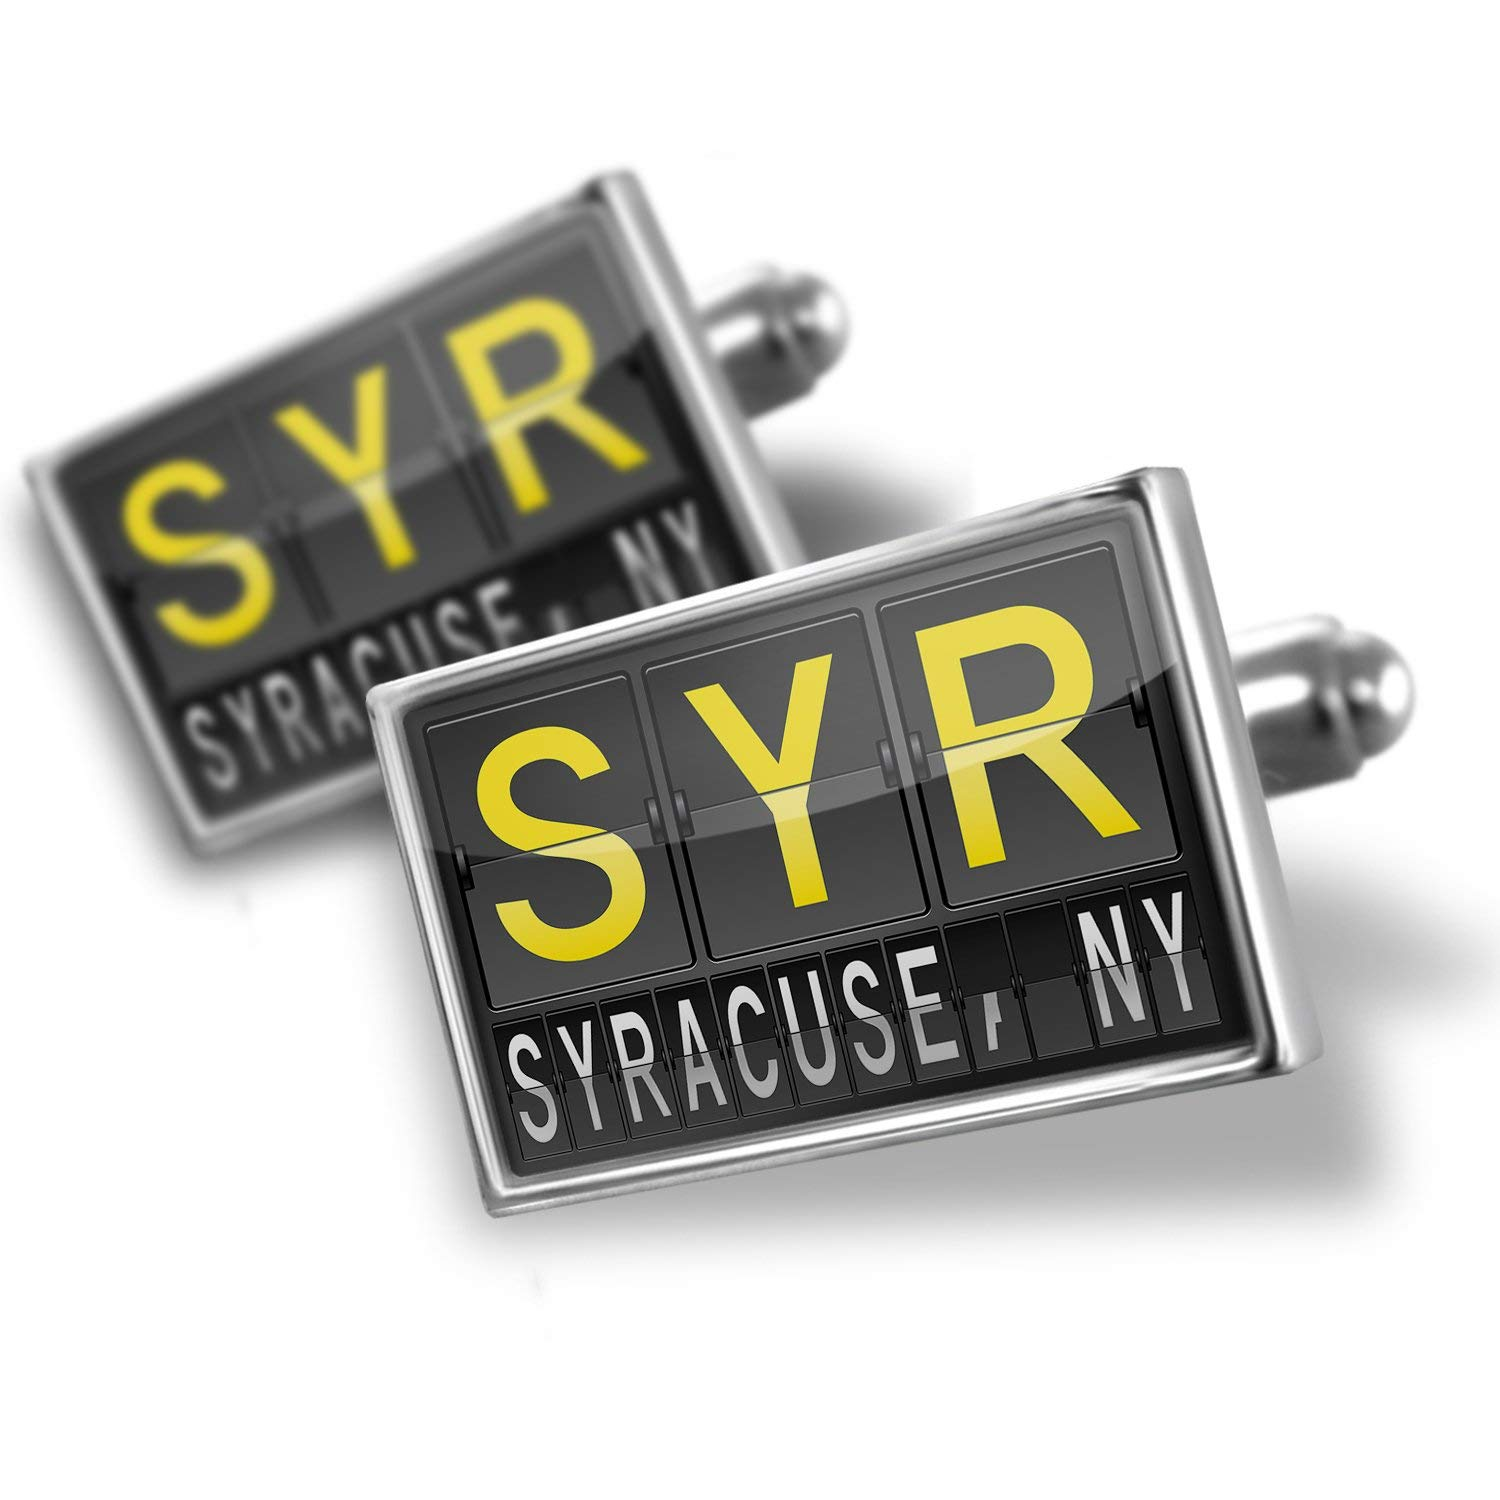 Get Quotations Neonblond Cufflinks Syr Airport Code For Syracuse Ny